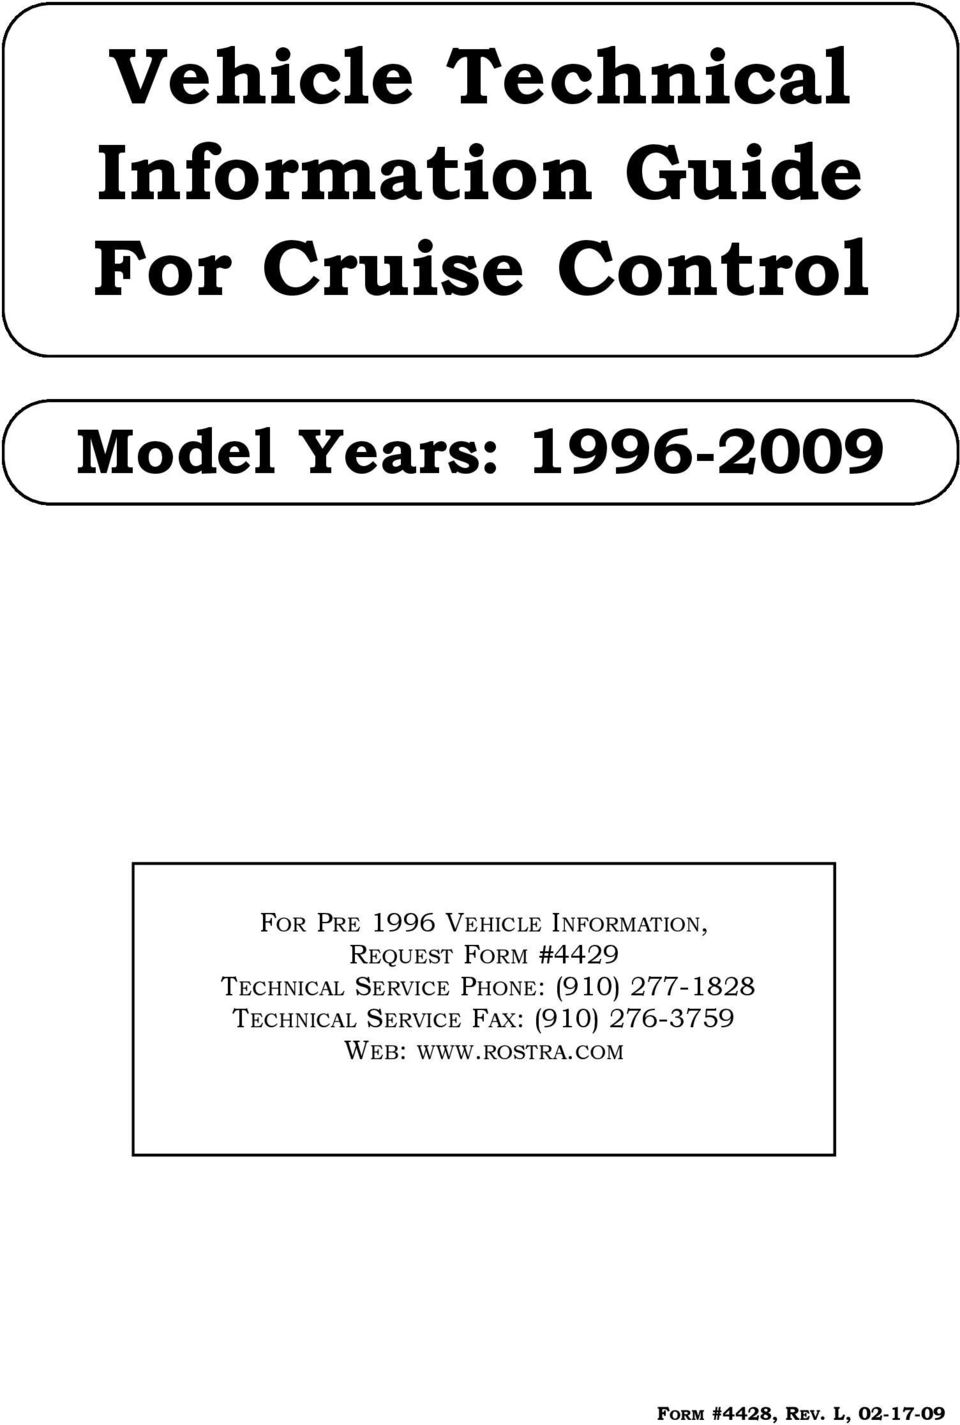 Vehicle Technical Information Guide For Cruise Control Pdf 2002 Ford F 150 Cruisecontrol Fuse Box Diagram Transcription